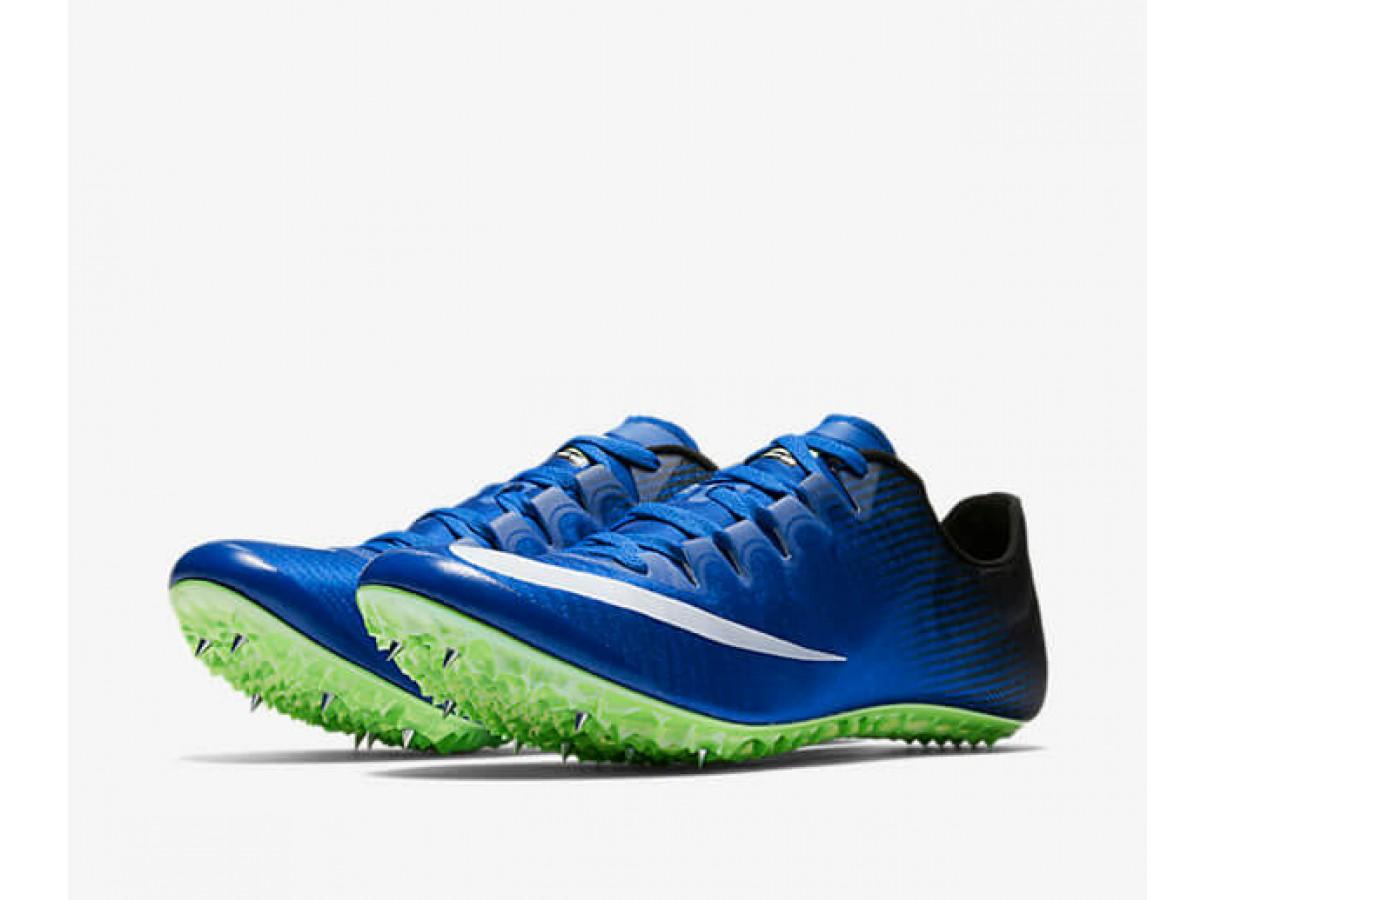 cc90f6dd88755 Nike Zoom Superfly Elite features a metal spike plate ...